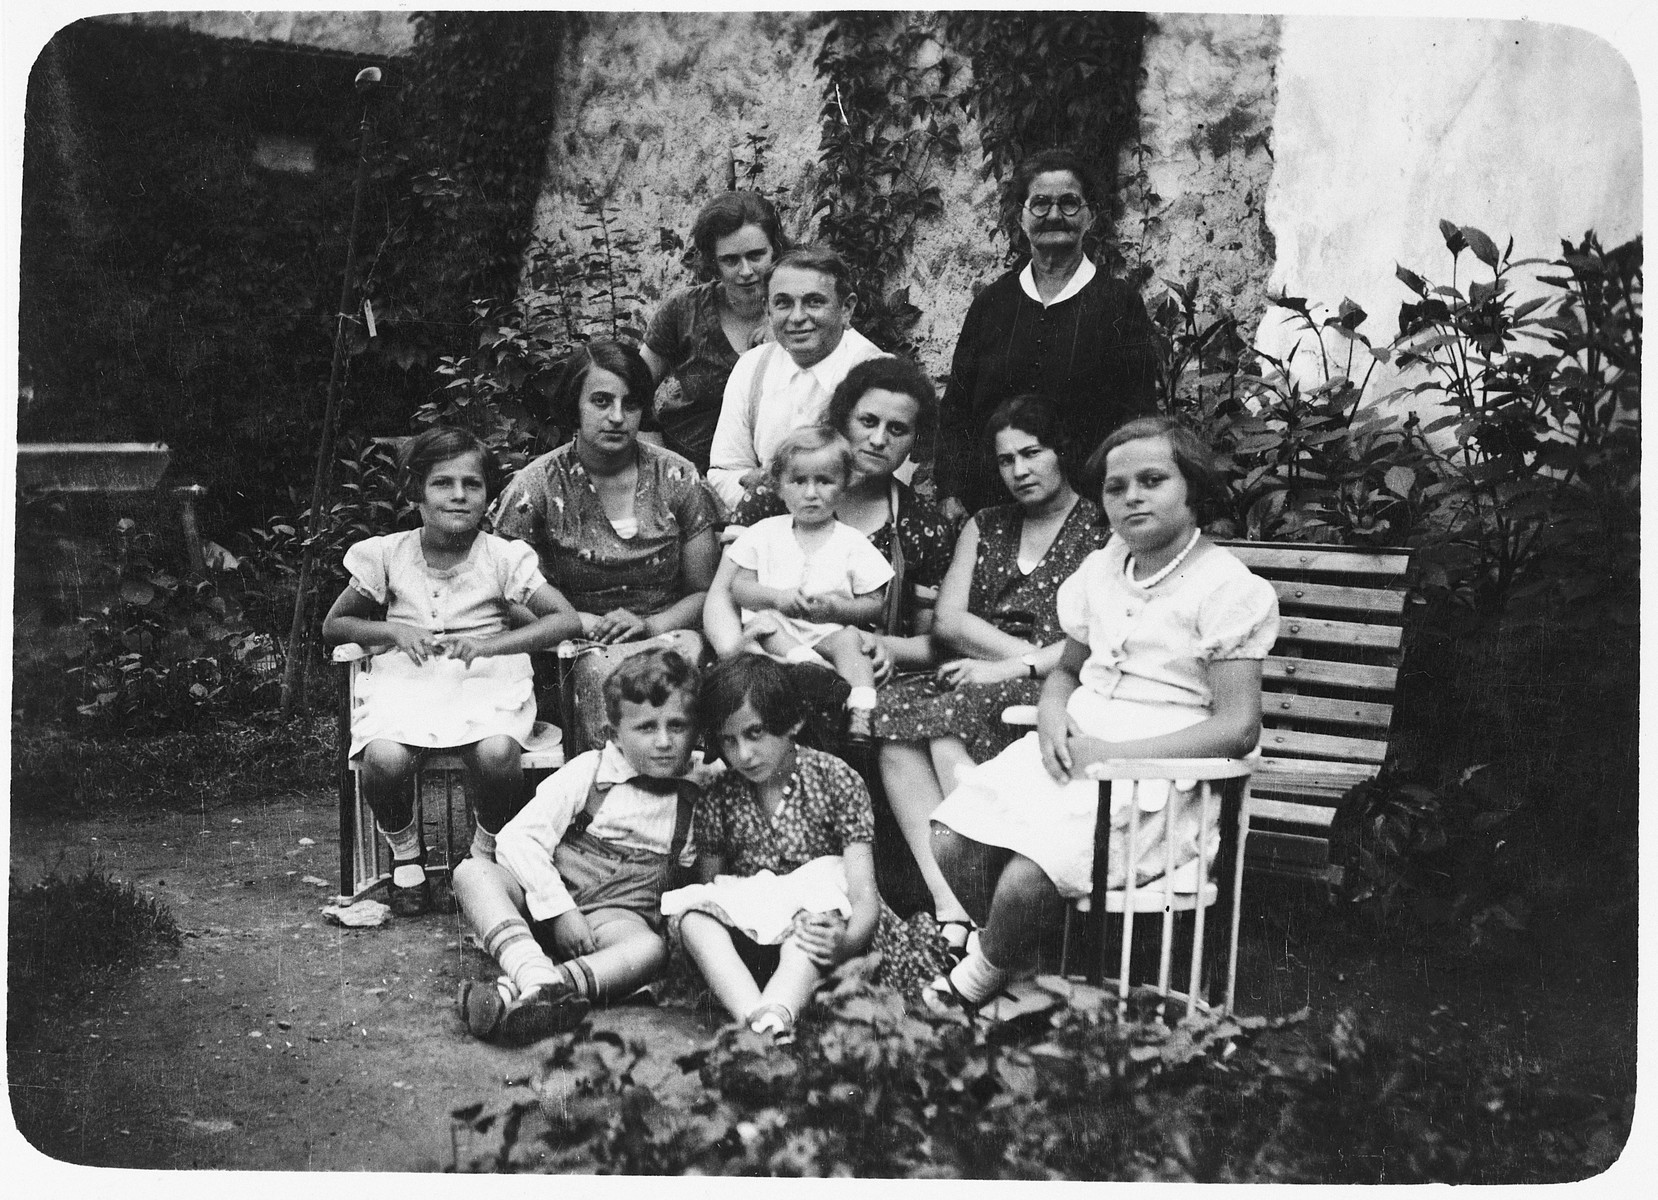 Prewar portrait of the Mittelman family in the garden of their home in Brezno.  Josef Mittelman is seated in the front row.  Also pictured are his parents and paternal grandmother.